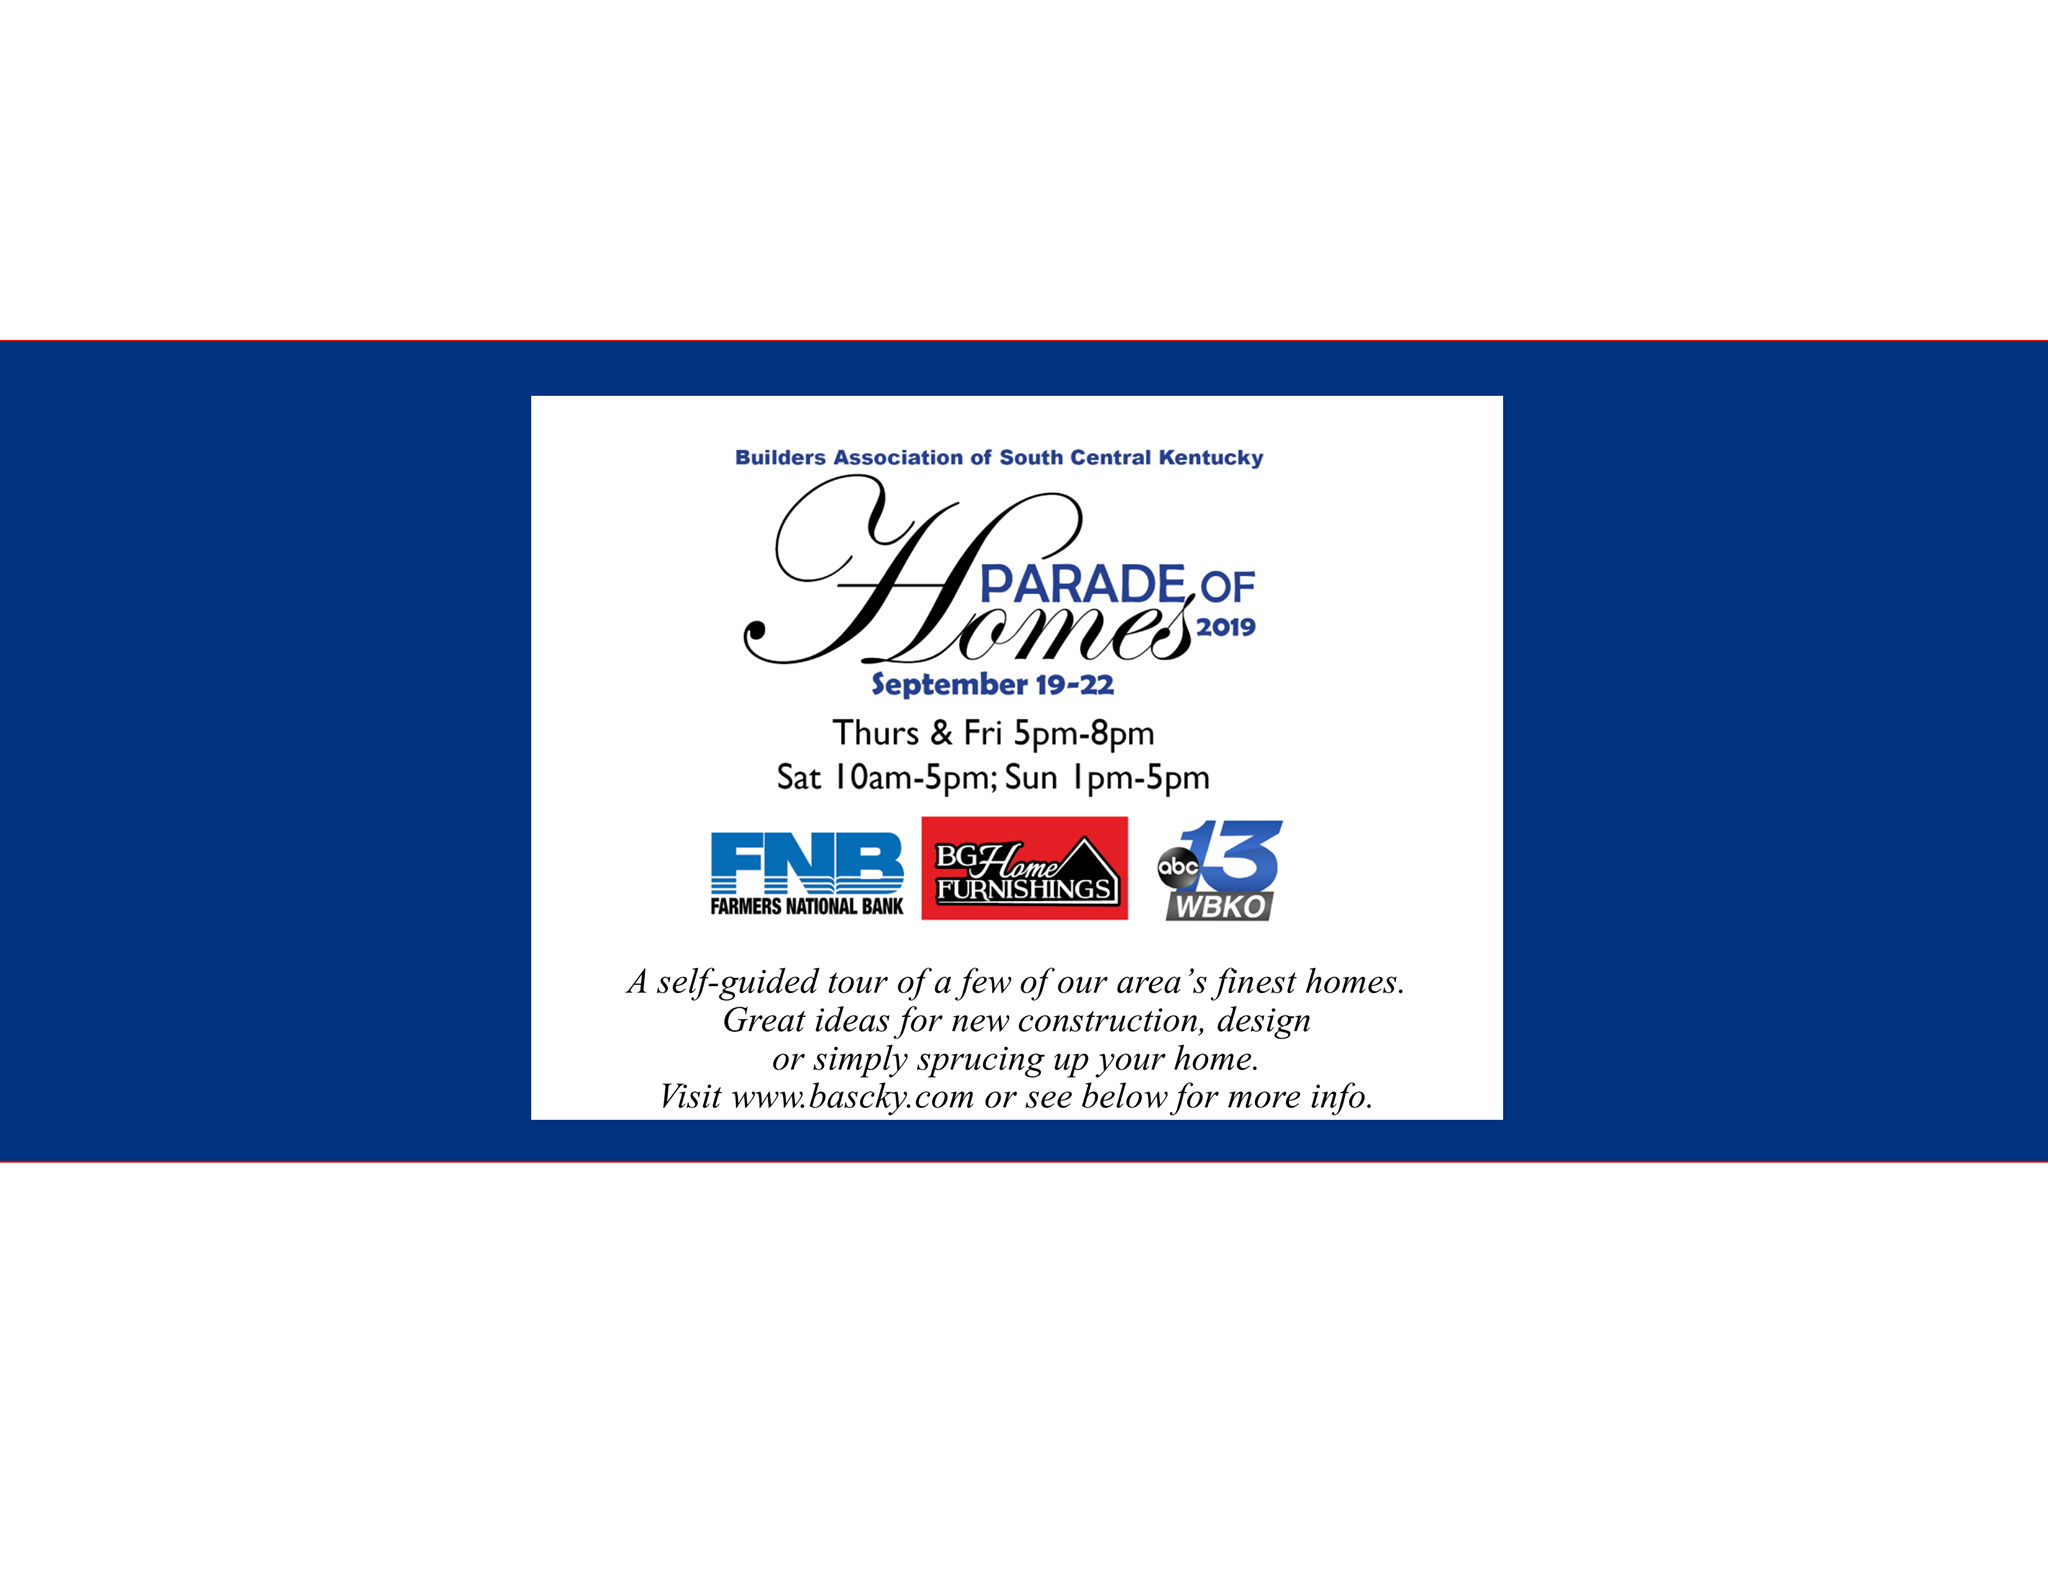 Parade of Homes is this weekend in Bowling Green